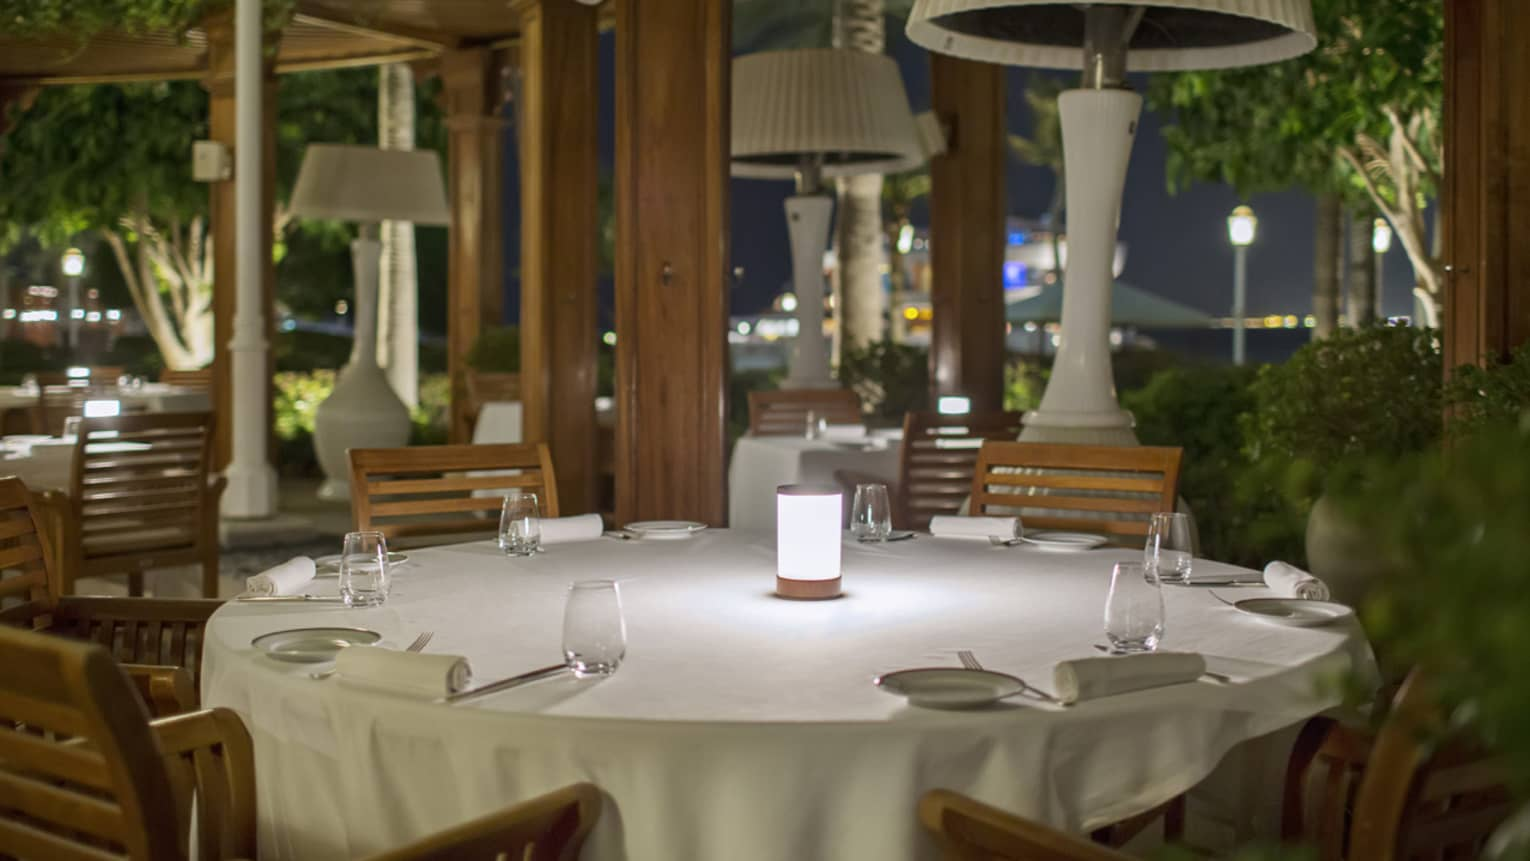 Round formal dining table at Il Tiatro restaurant at night, tall white lamps